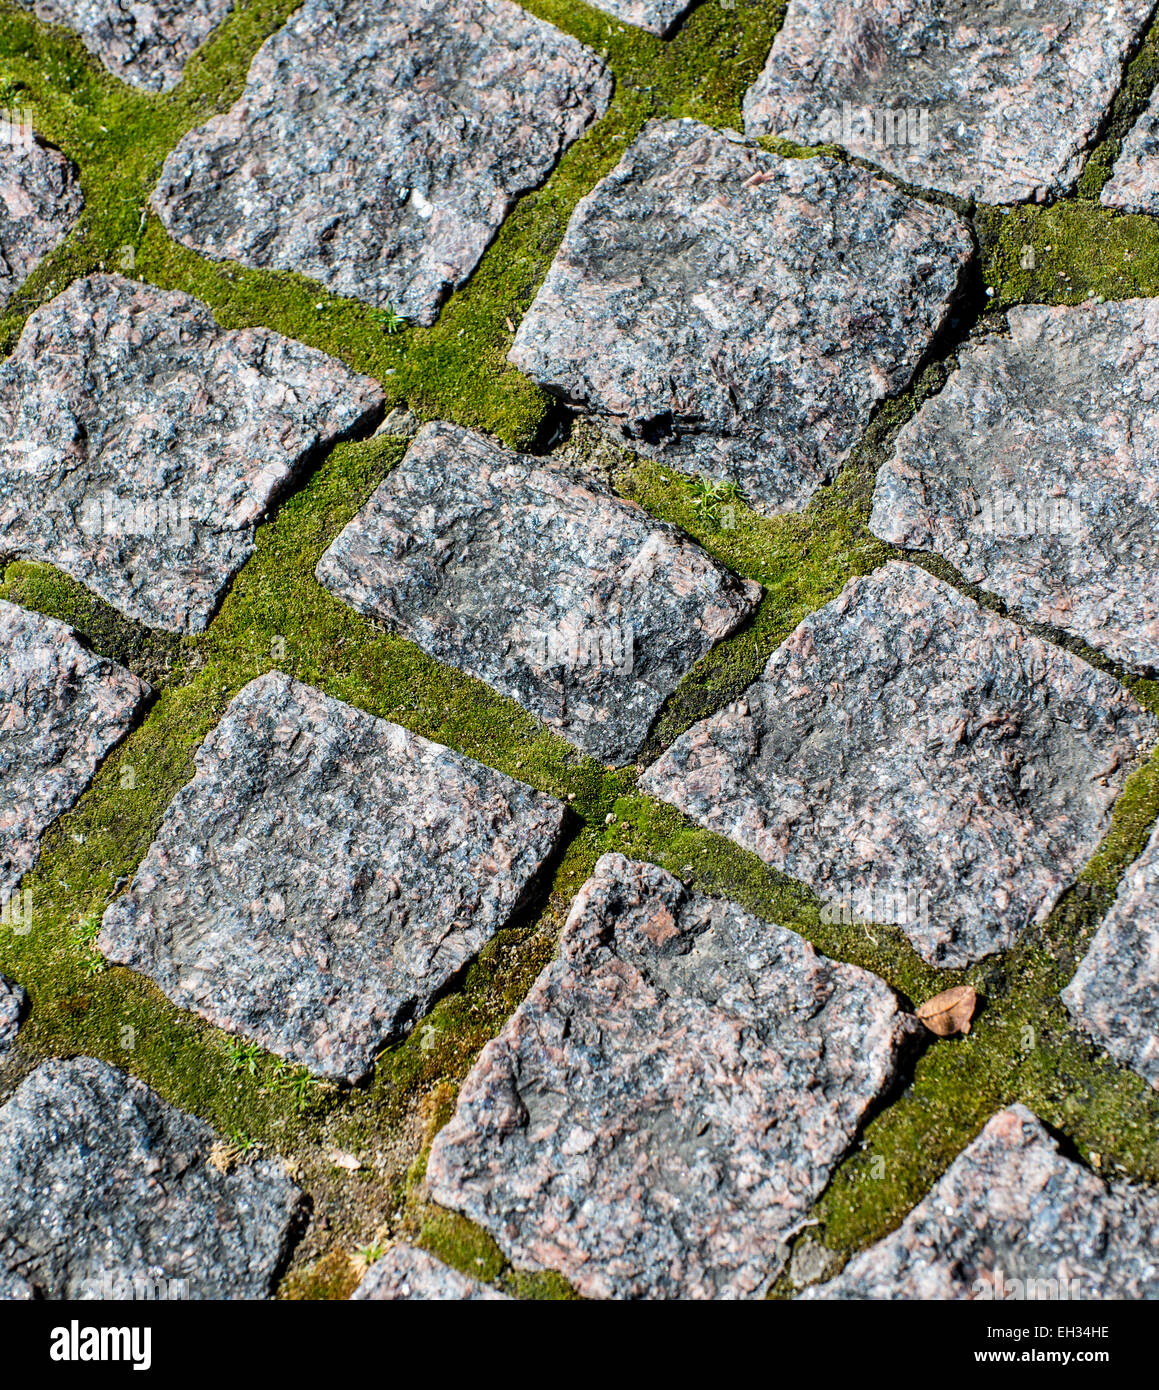 Close-up of permeable pavement in a public plaza - Stock Image